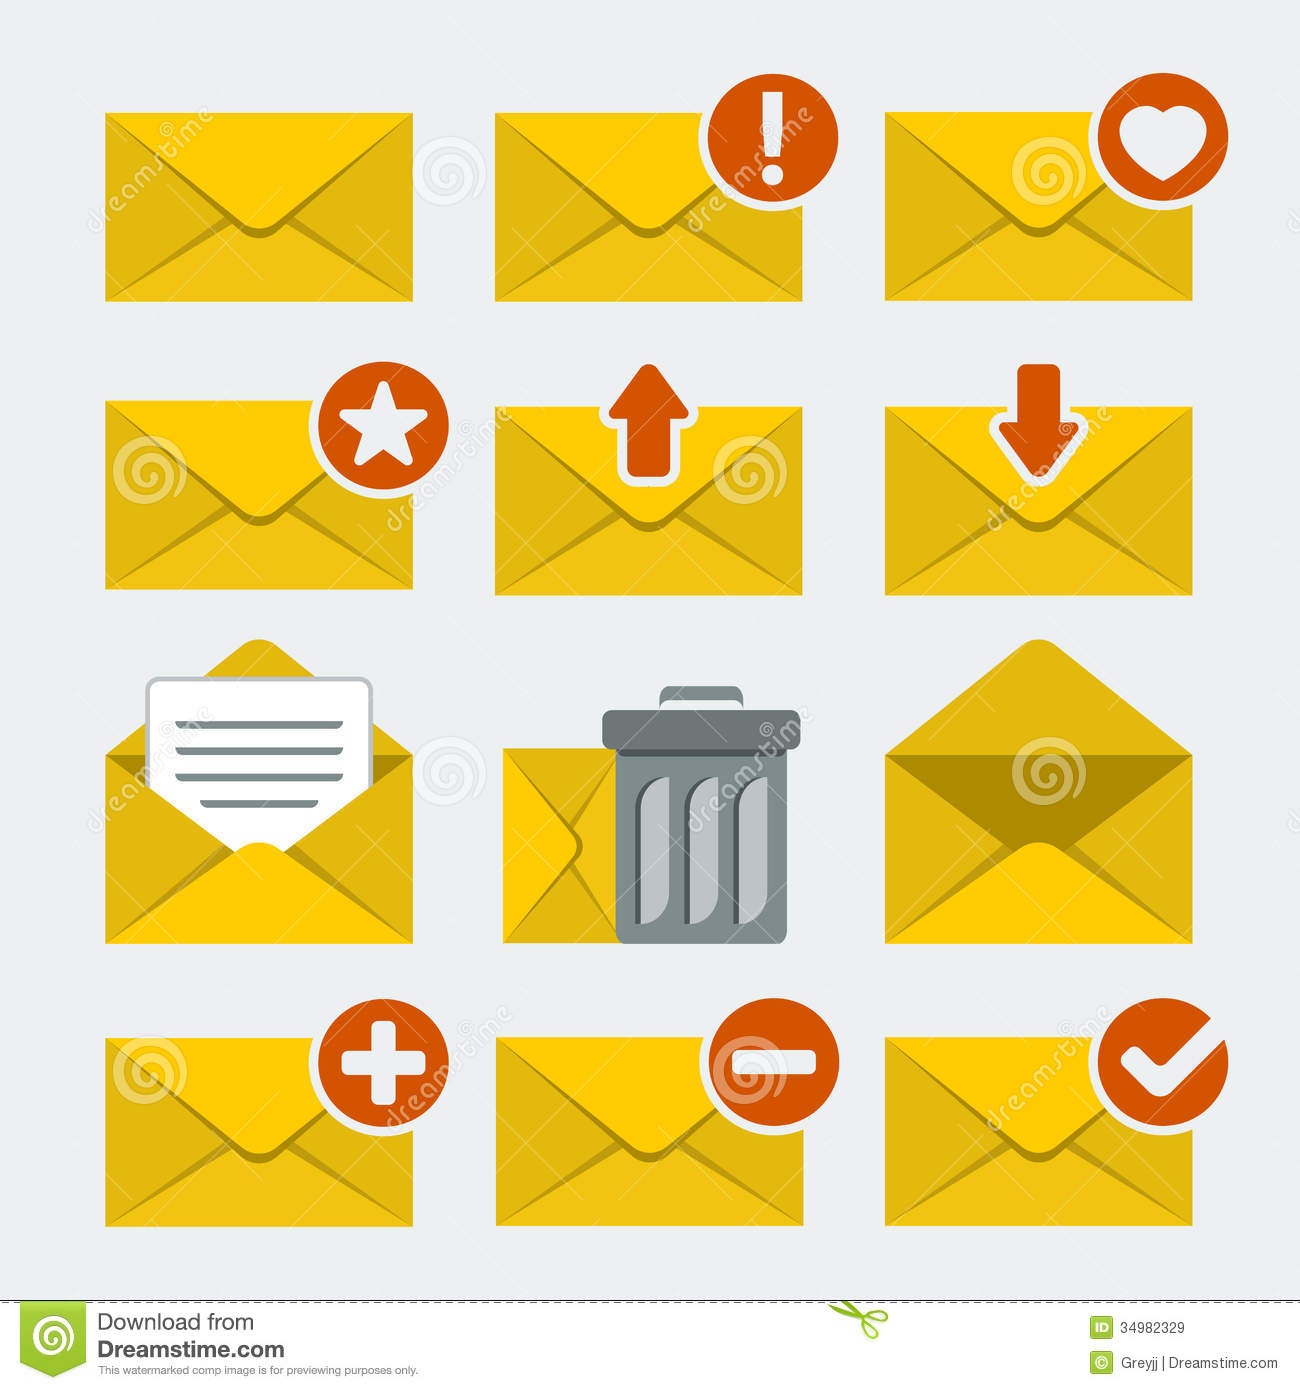 how to set time on hotmail email